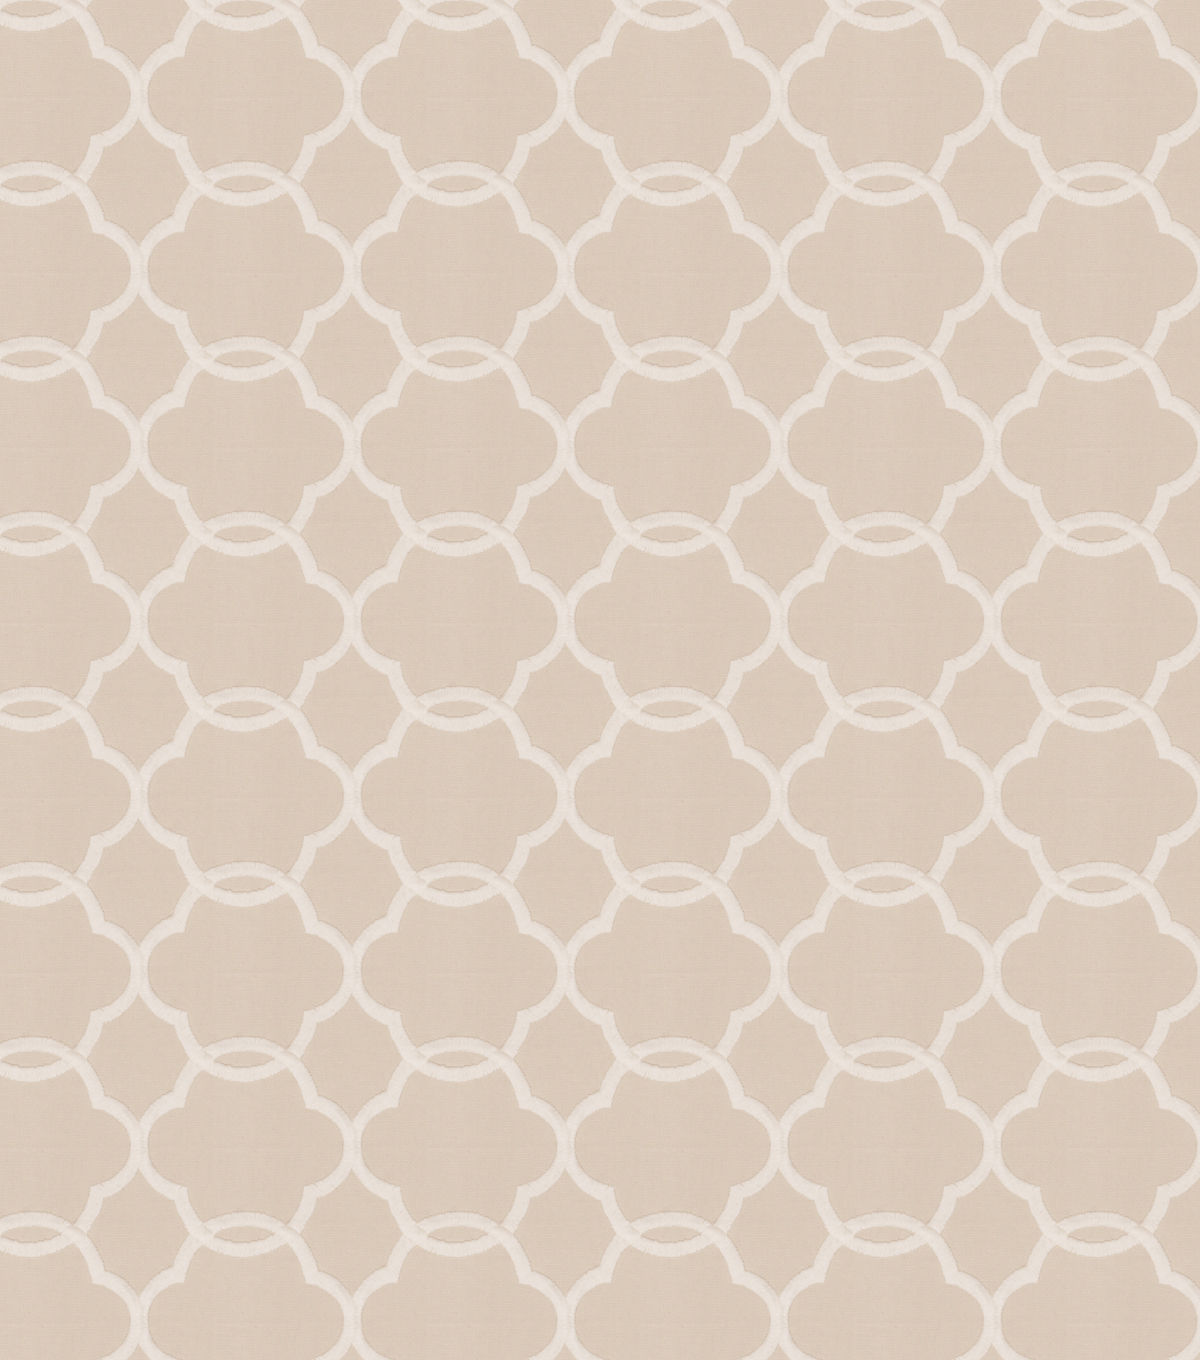 Eaton Square Lightweight Decor Fabric 53\u0022-Shaw/Flax